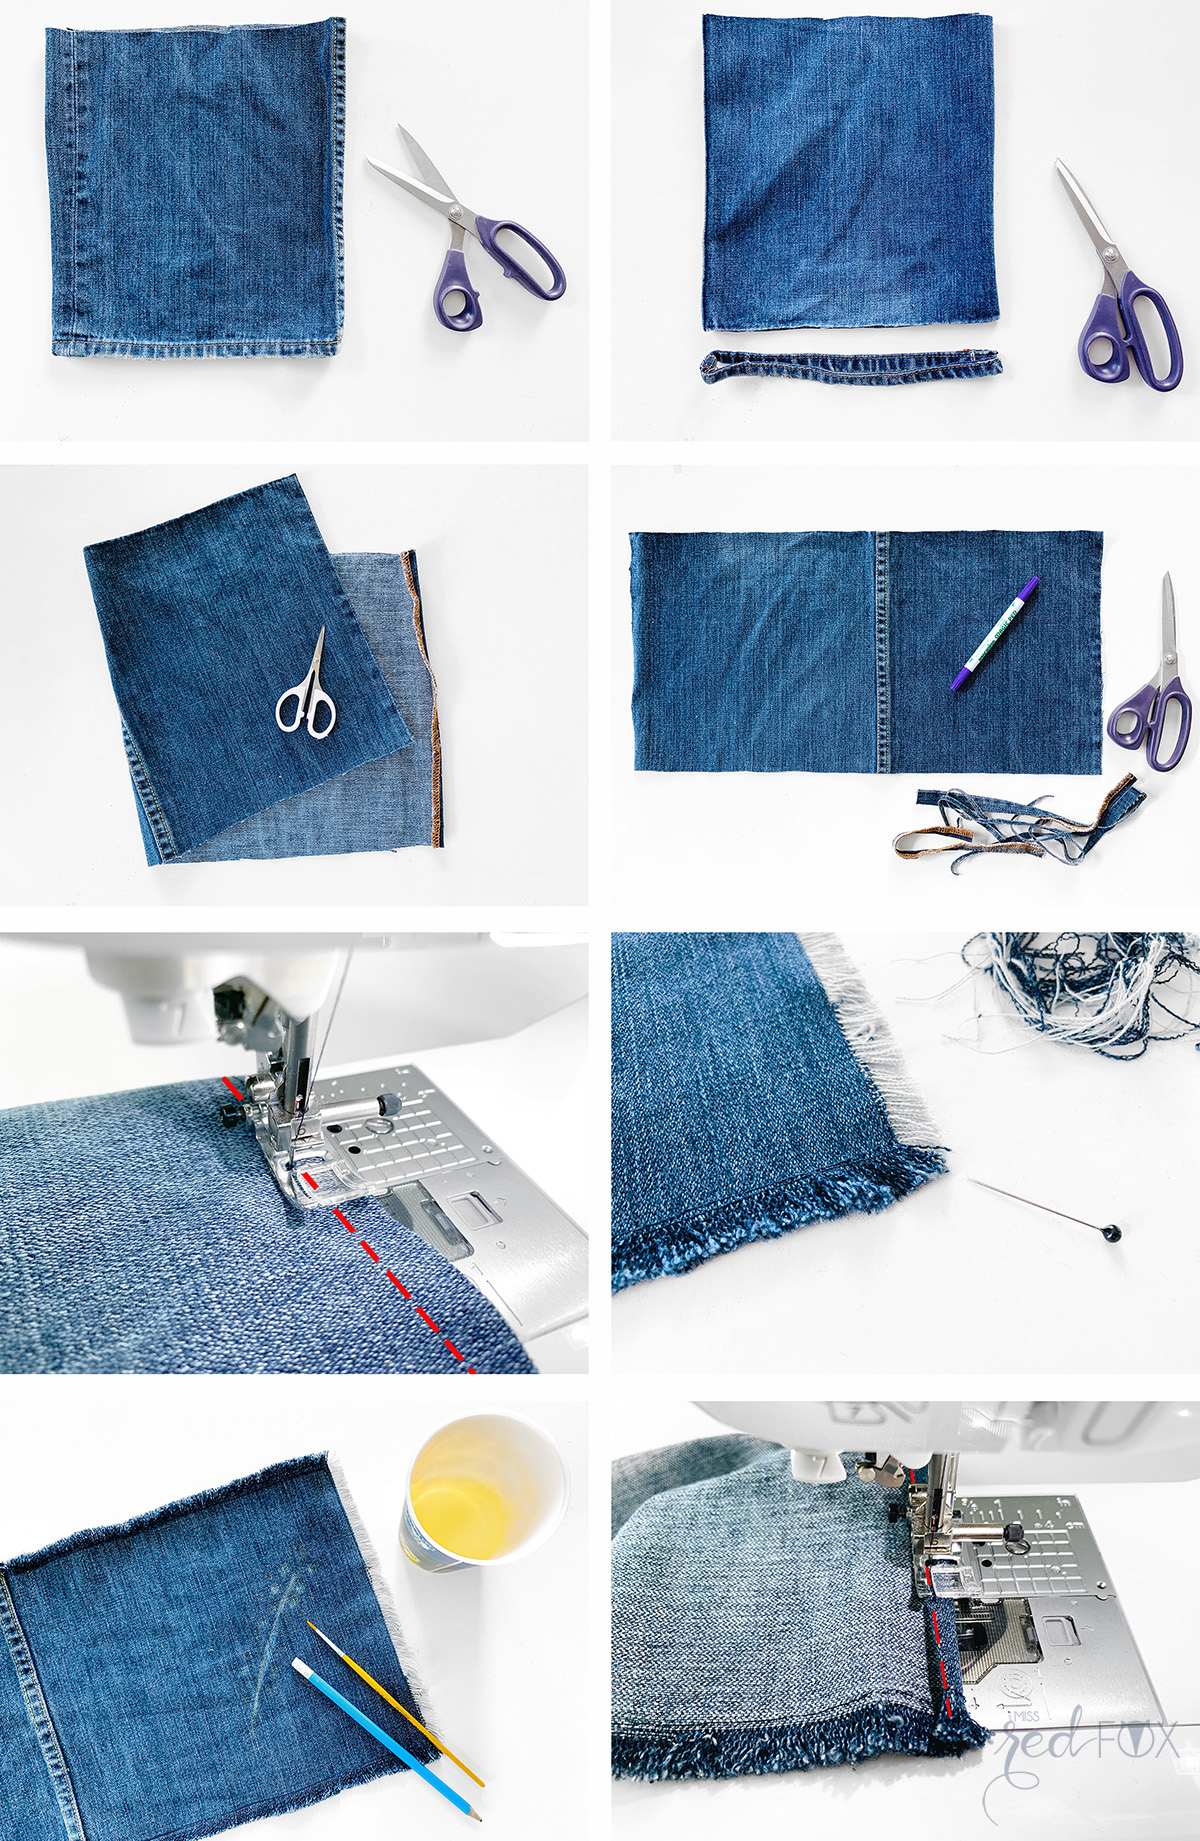 missredfox - 12giftswithlove 06 - Picknick - DIY Upcycling Jeans Servietten bleichen - 05